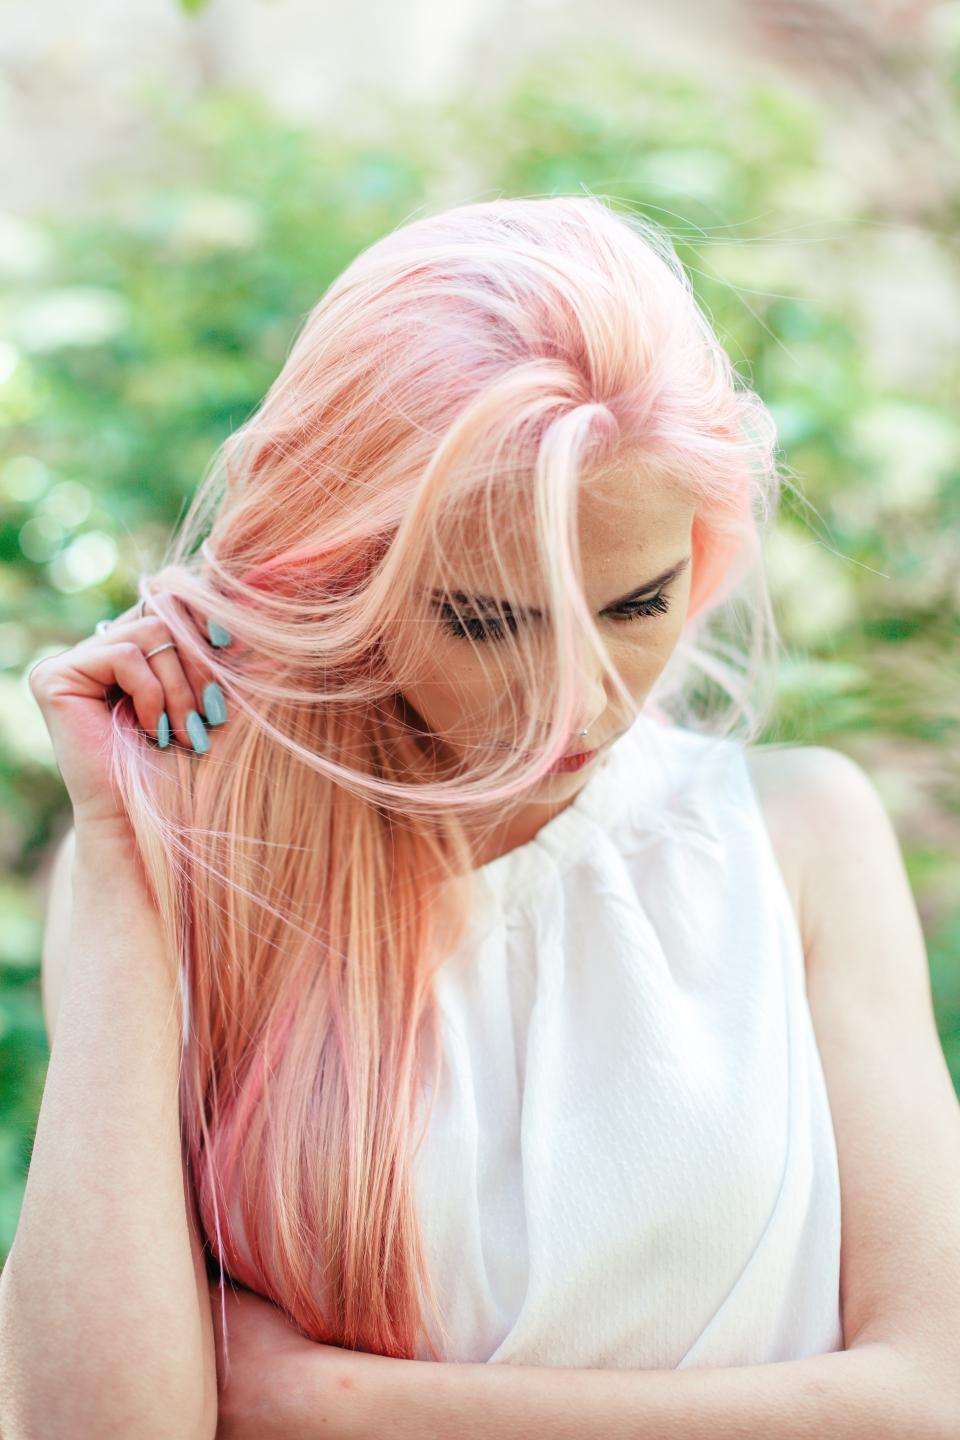 people, girl, woman, blonde, hair, hairstyle, manicure, makeup, salon, beauty